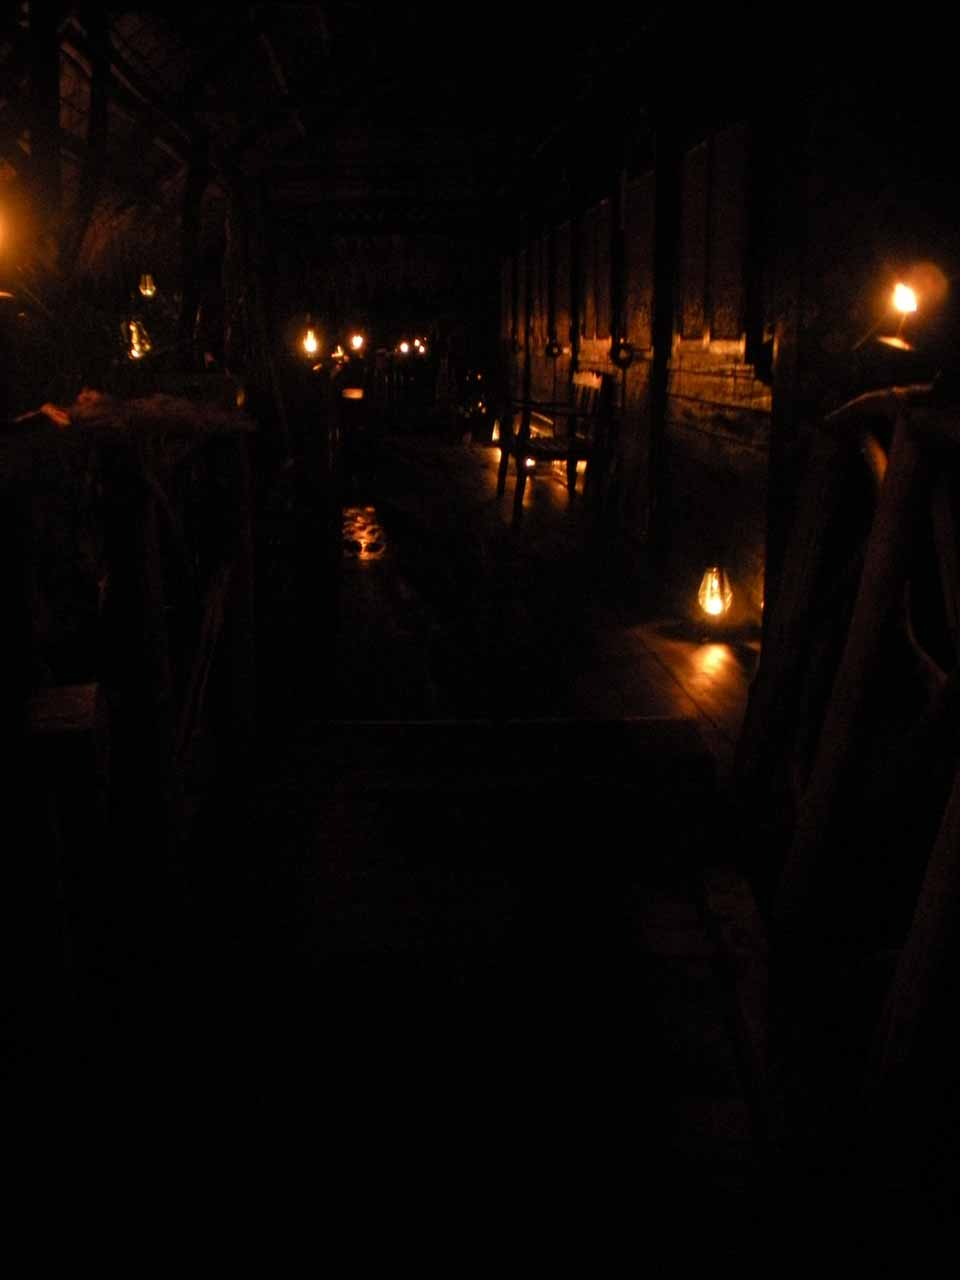 No electricity at the Jungle Raft - only candlelight and gaslight